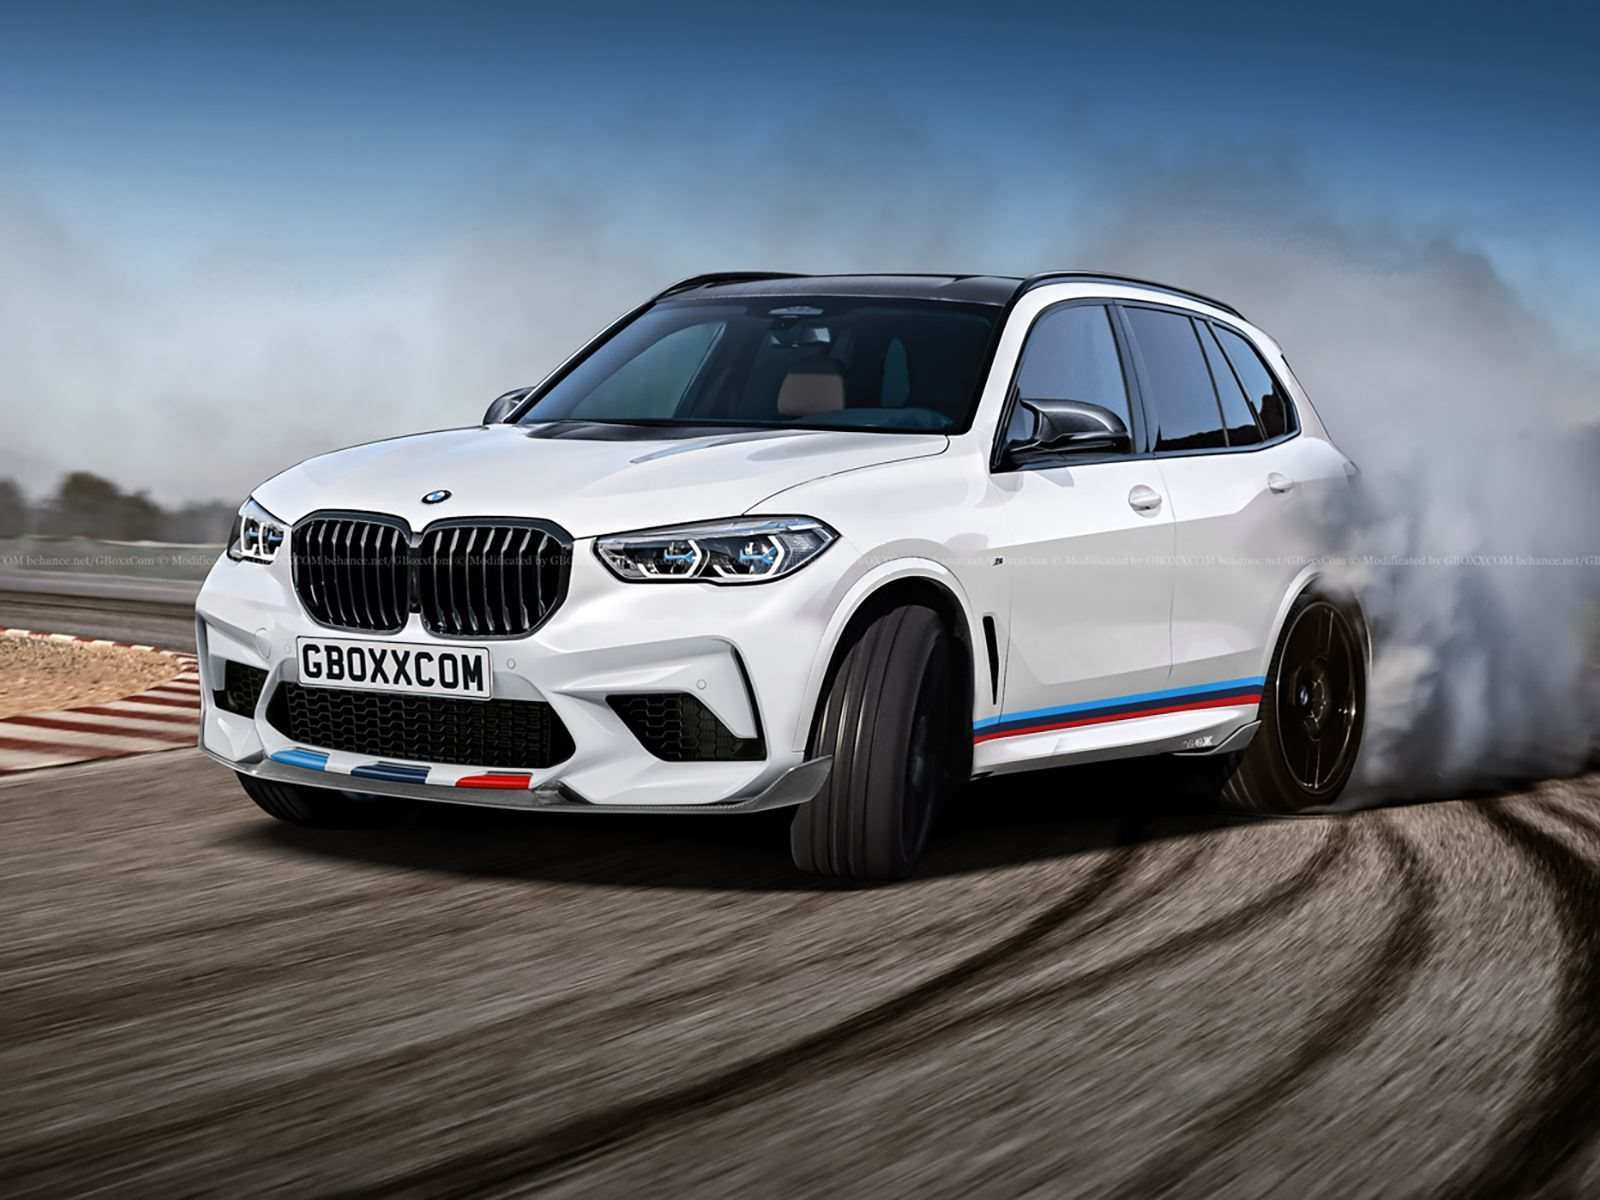 94 All New 2020 Bmw X5M Picture by 2020 Bmw X5M